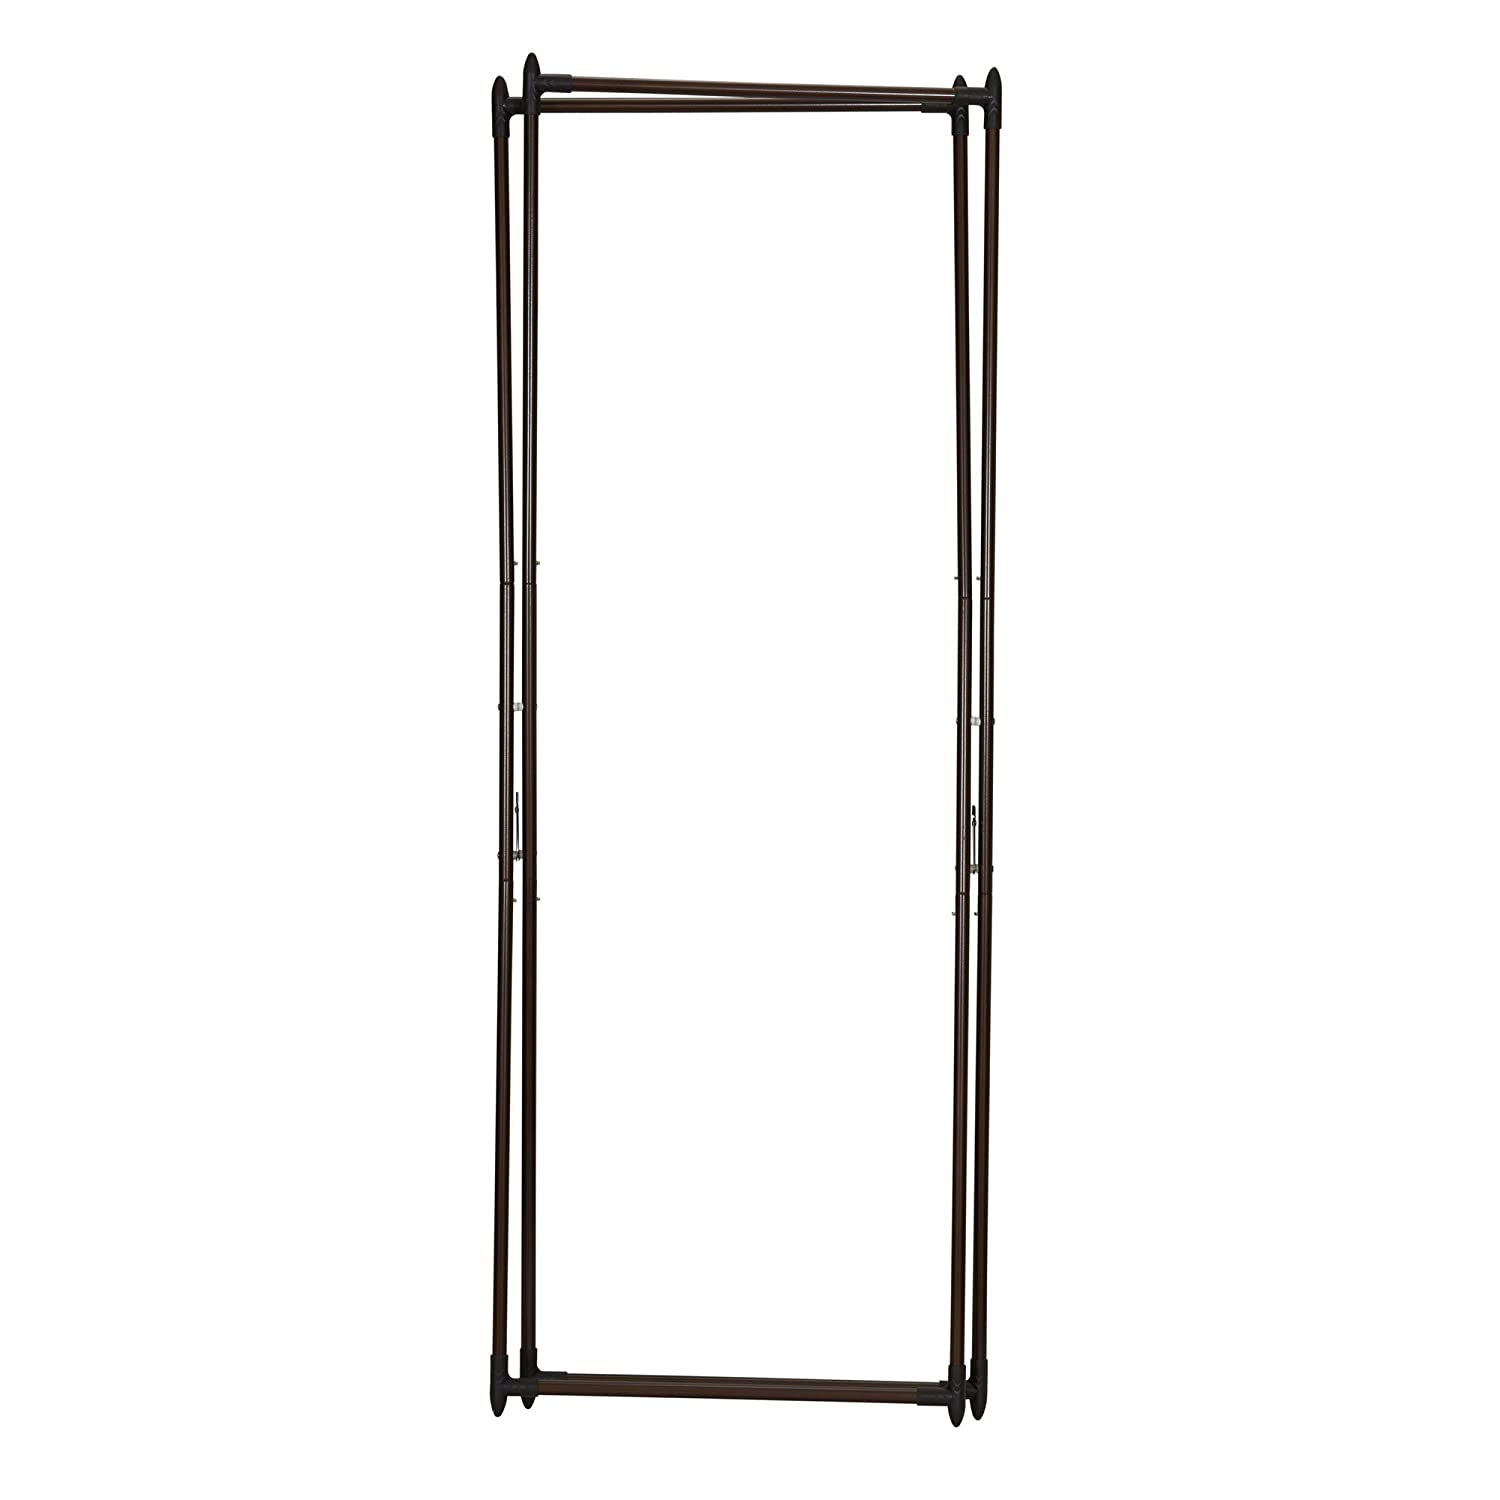 Household Essentials 5277 Portable Clothing Valet Rack Hang Wet or Dry Laundry Antique Bronze